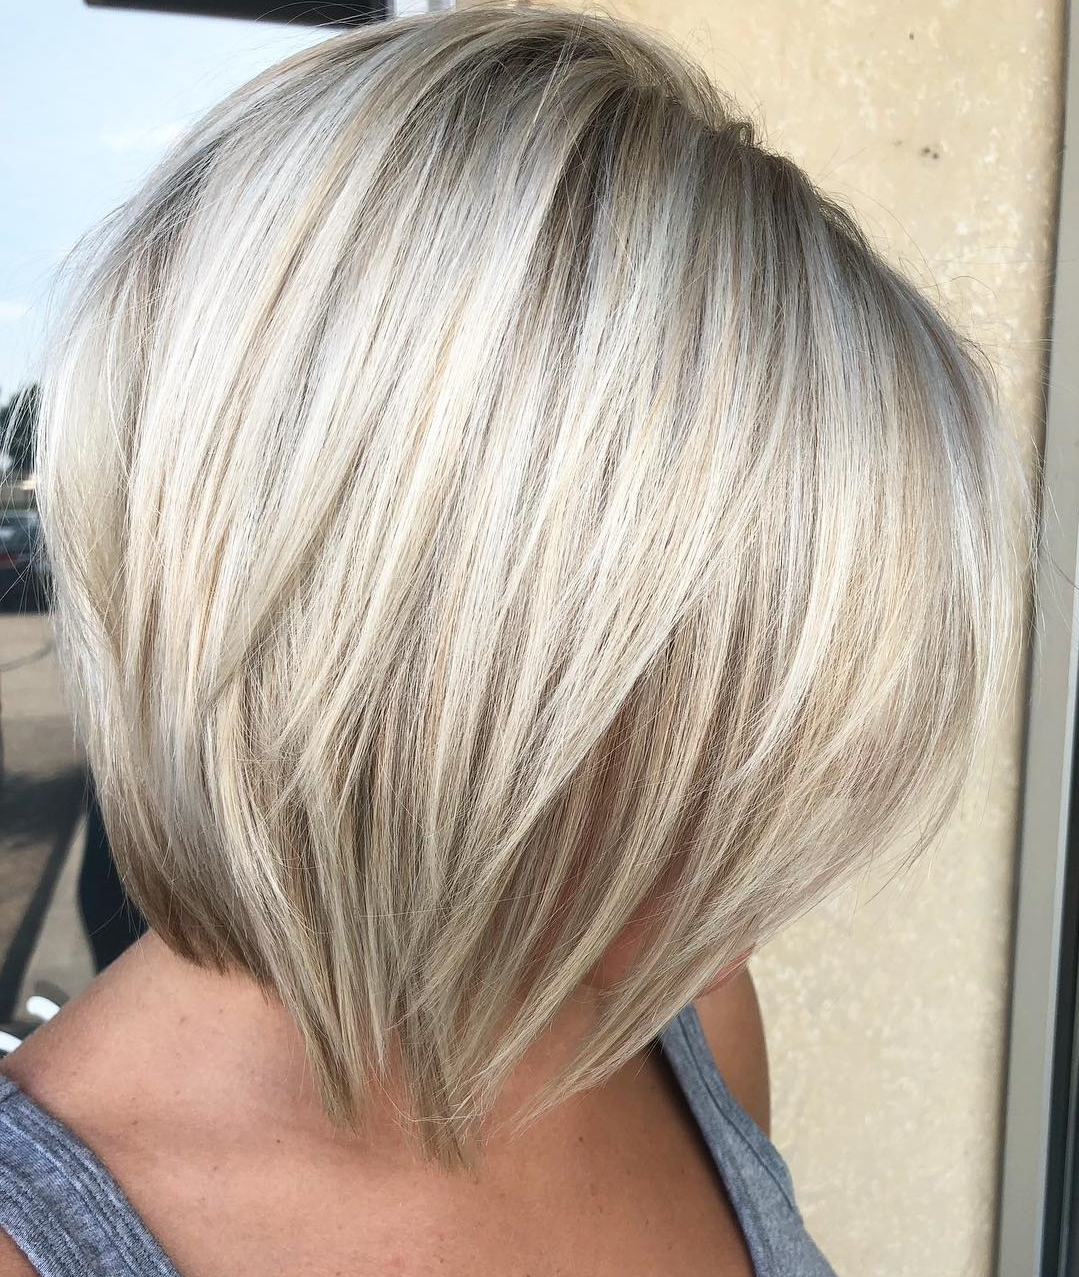 45 Short Hairstyles For Fine Hair To Rock In 2020 Inside Widely Used Edgy Haircuts For Thin Hair (View 10 of 20)